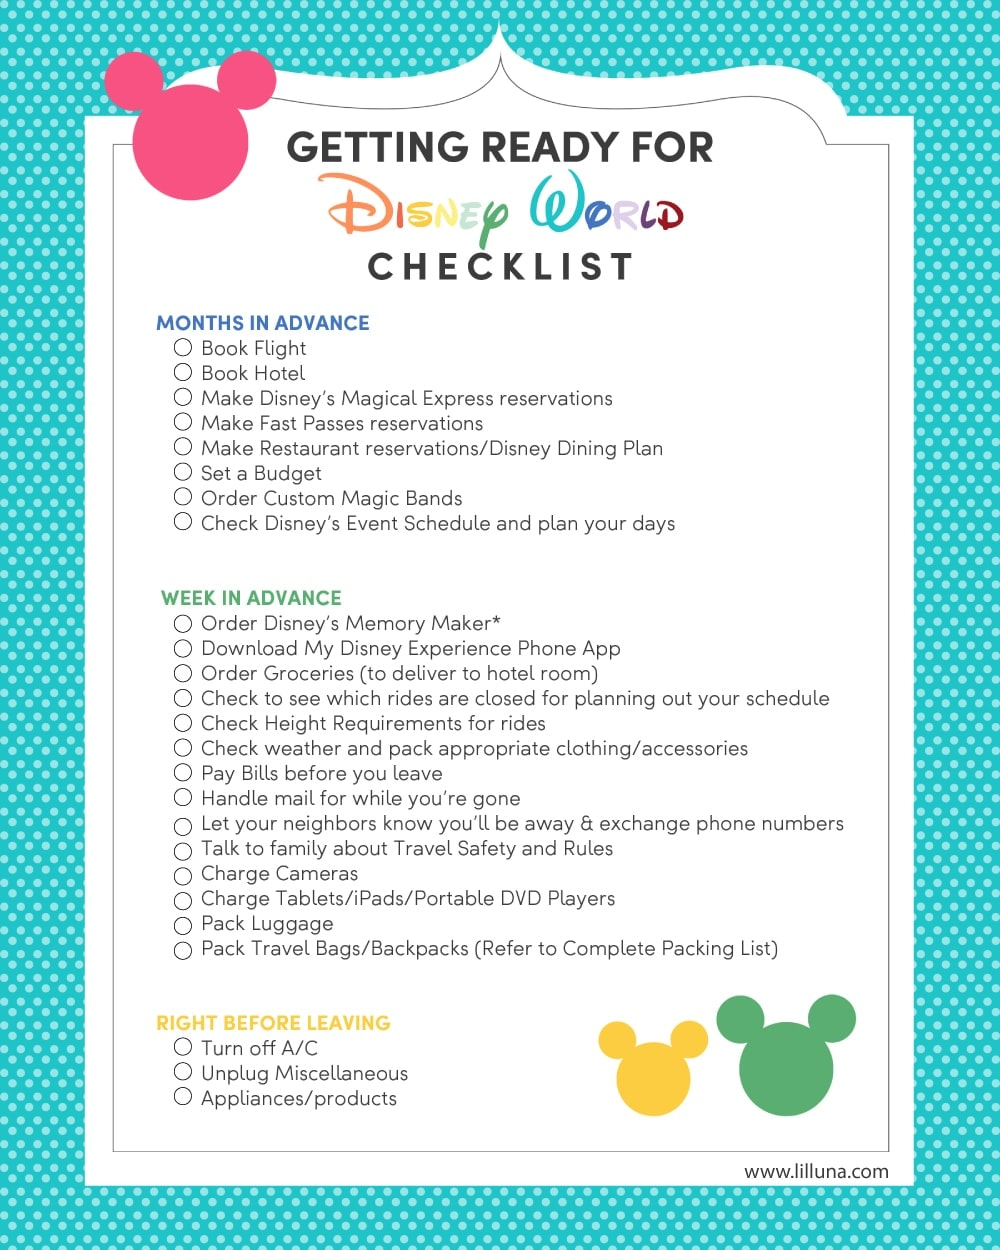 Getting ready for Disney World Checklist - use this free printable to help you get ready for your trip to the Happiest Place on Earth!